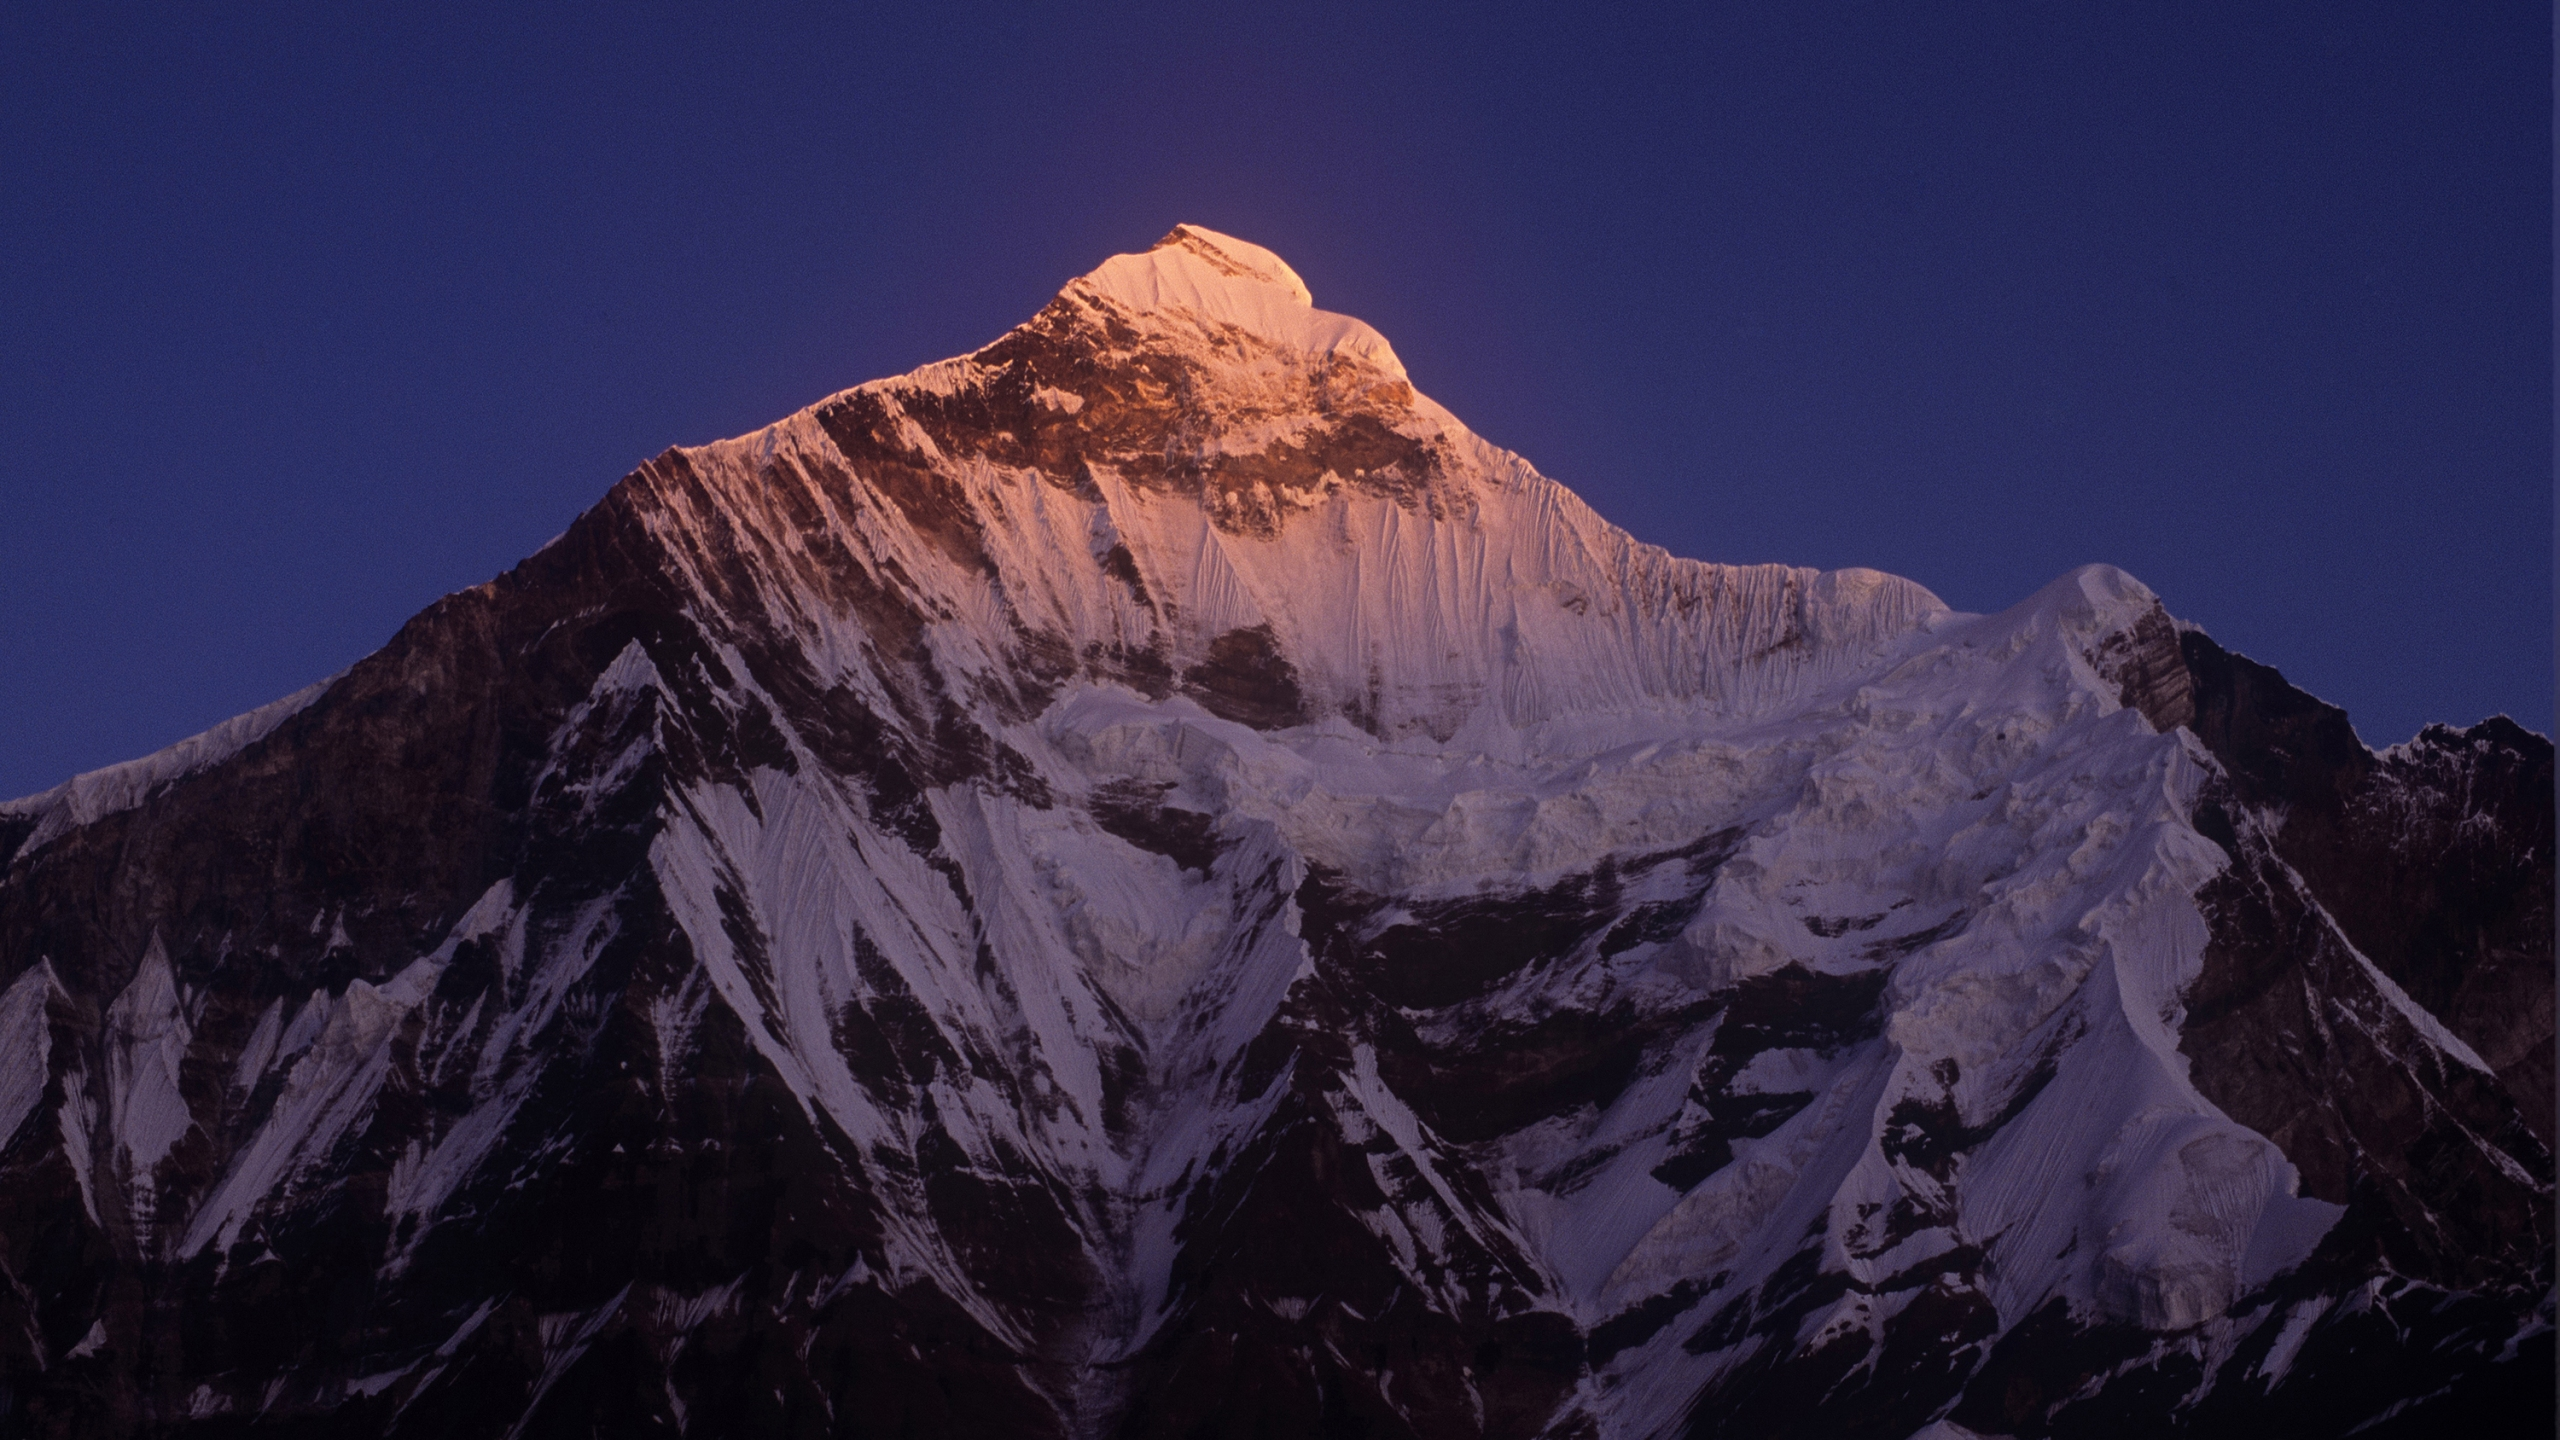 Nanda Devi East in the Himalayas in Uttarakhand, India is seen in a photo dated Dec. 14, 2006. (Credit: Getty Images)